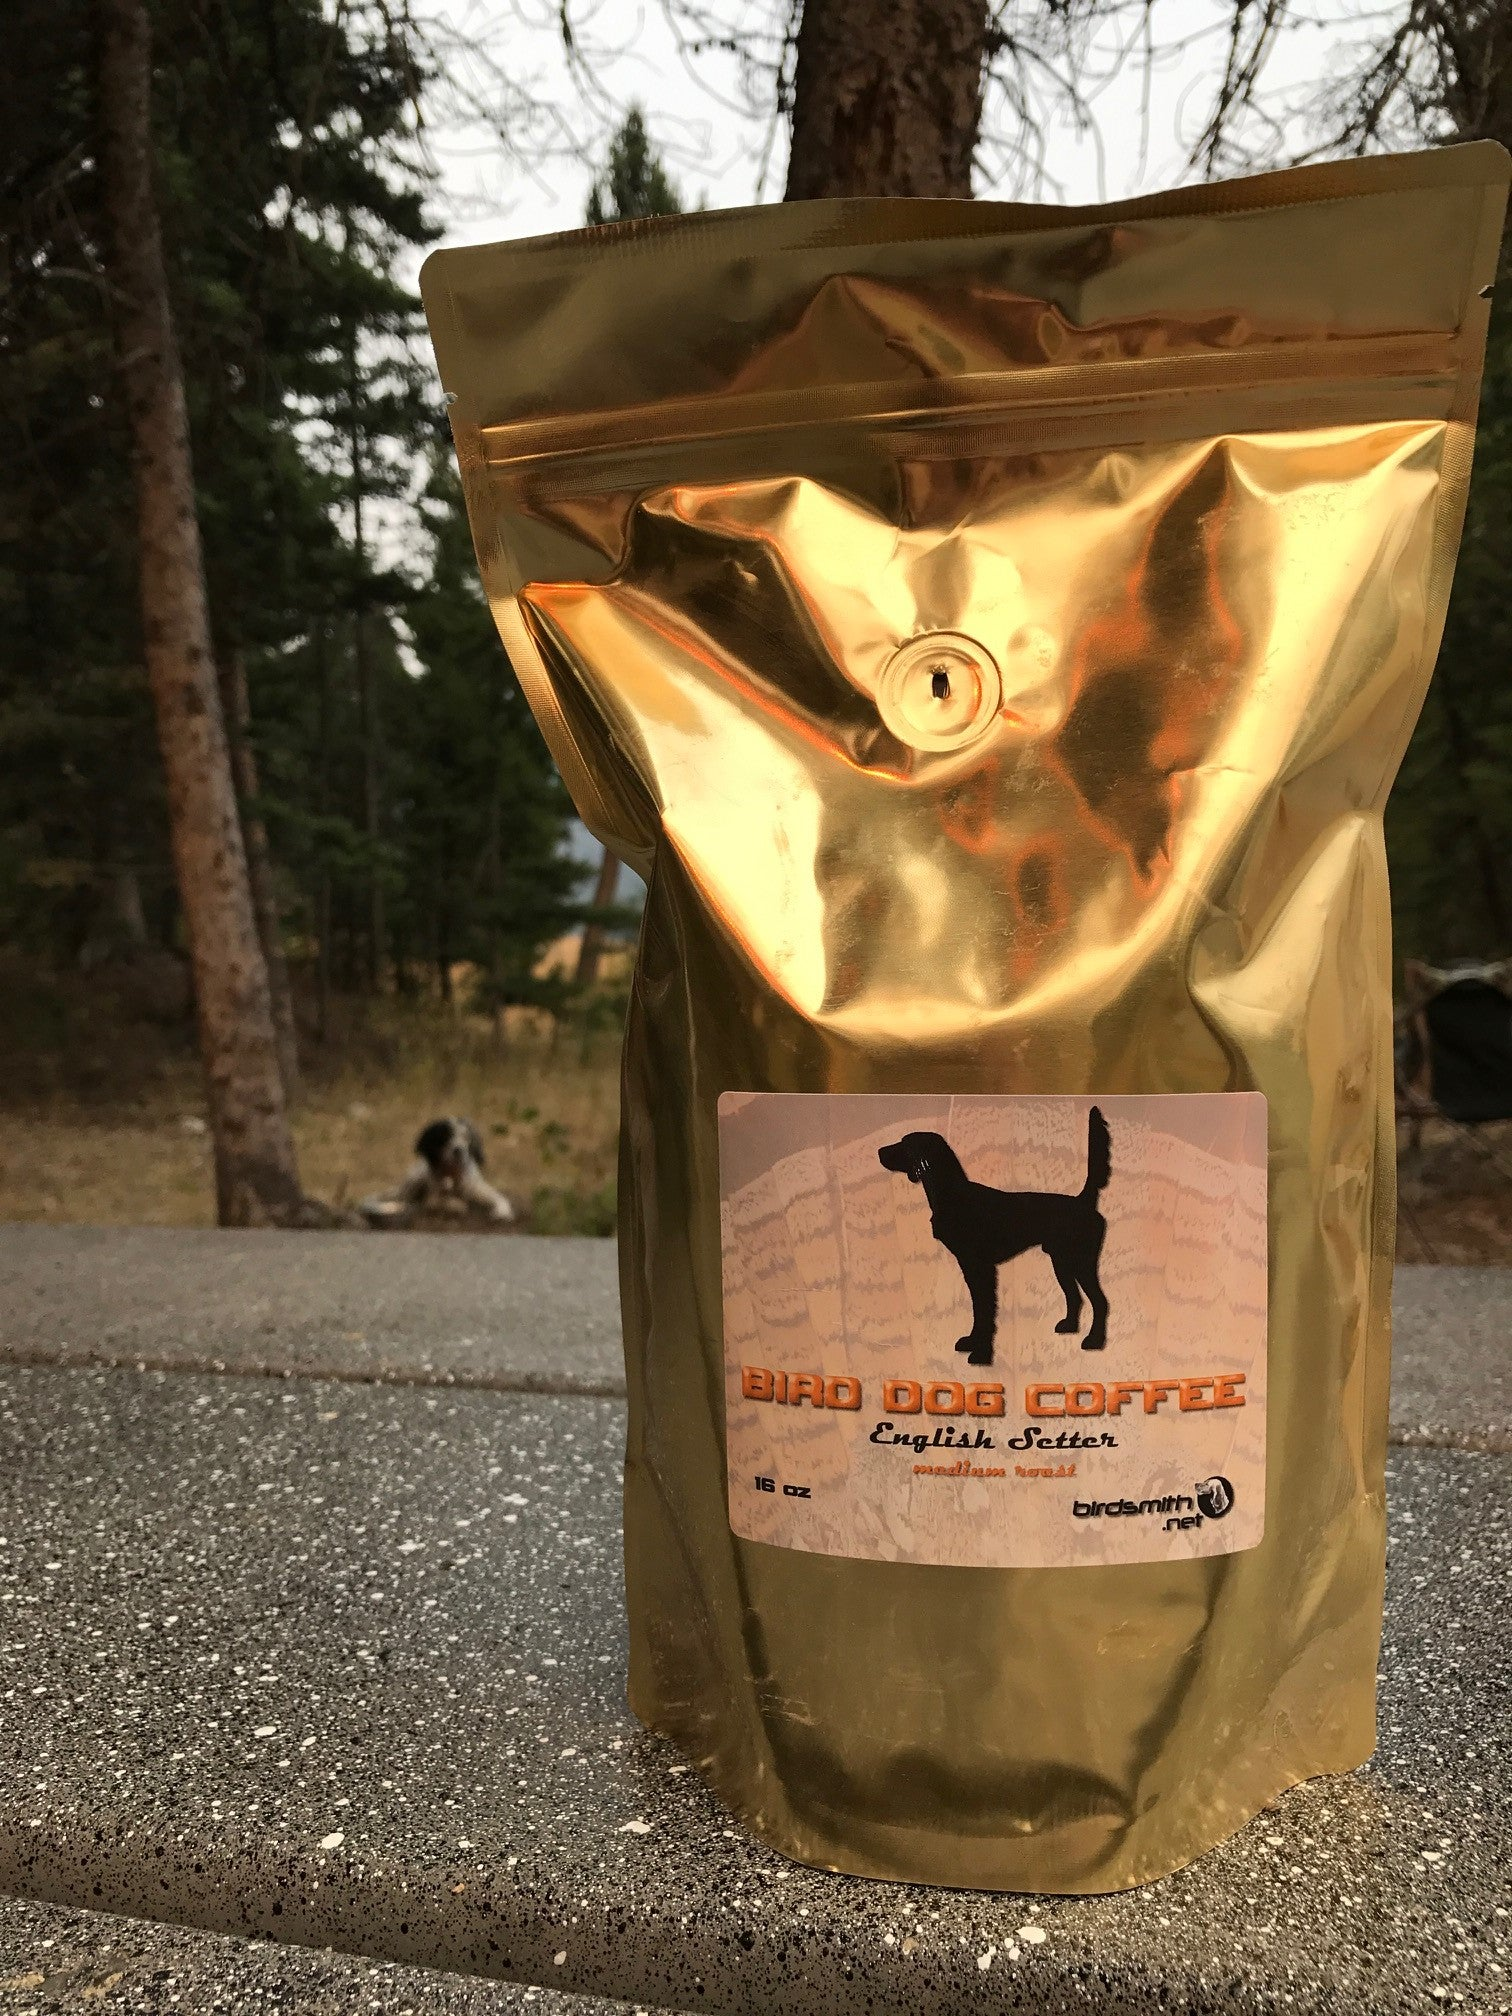 BIRD DOG COFFEE - English Setter Whole Bean